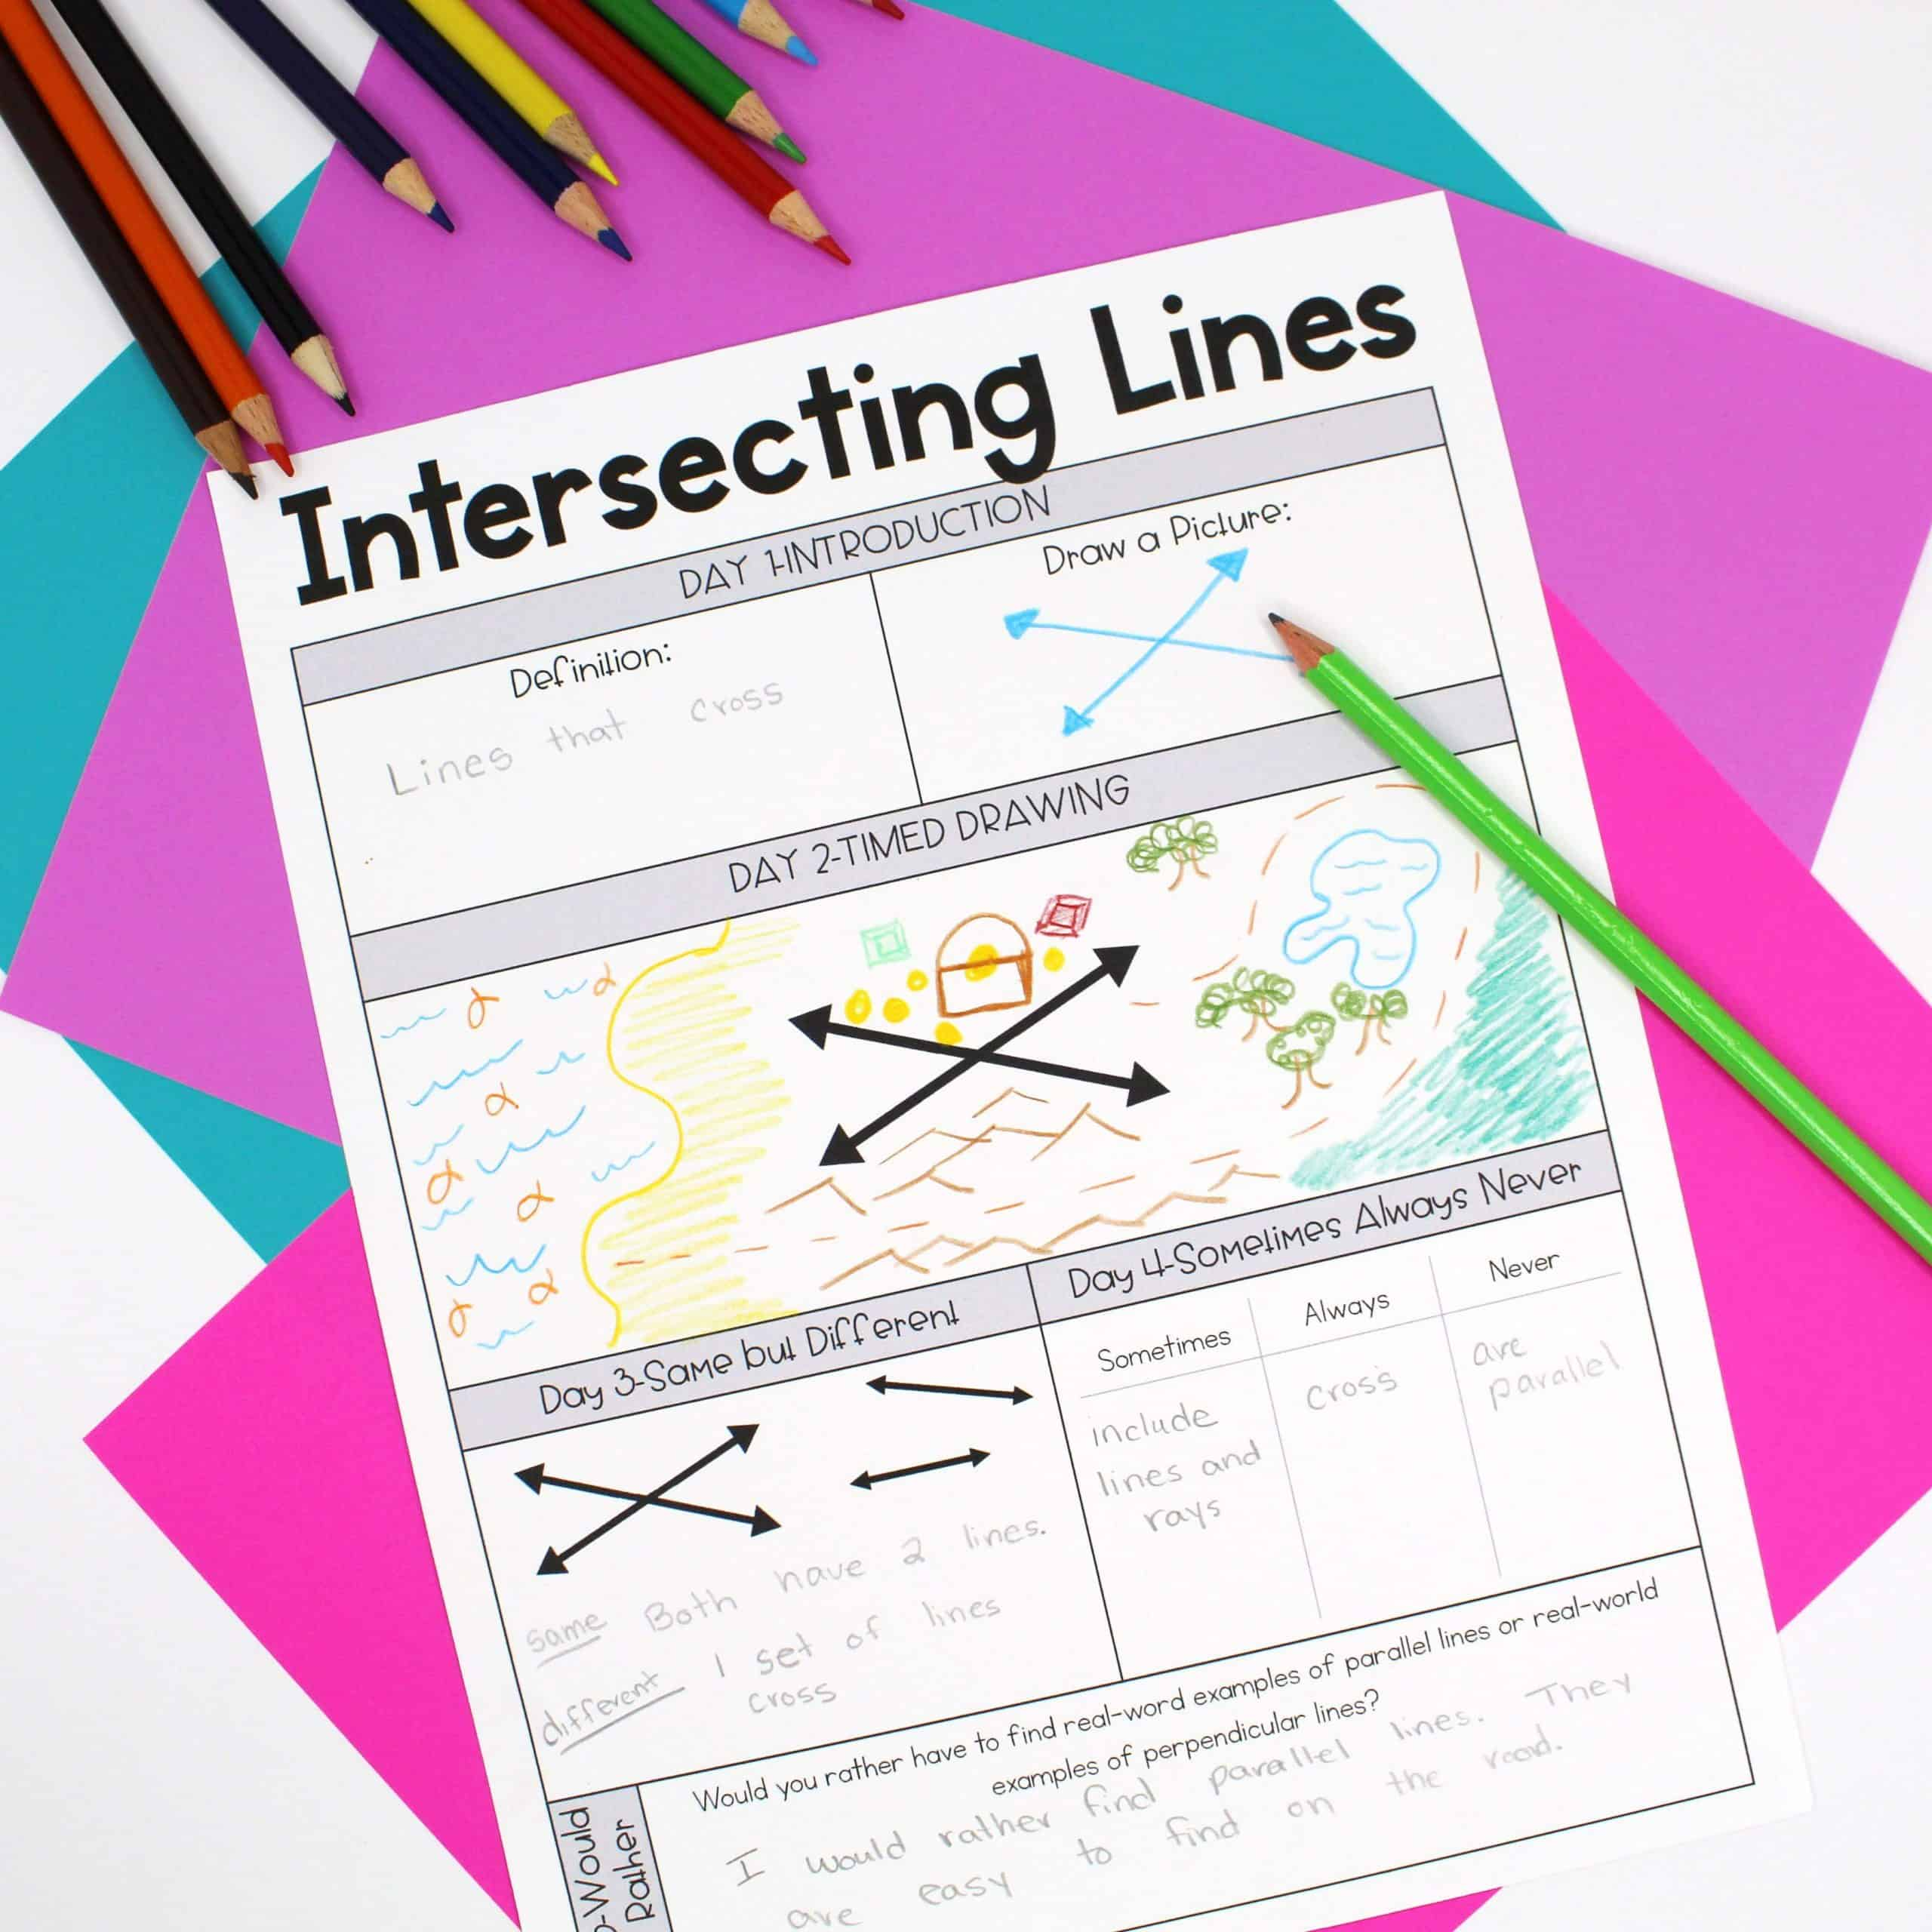 Daily instructional routines worksheet to help teach the definition of intersecting lines with different activities per day